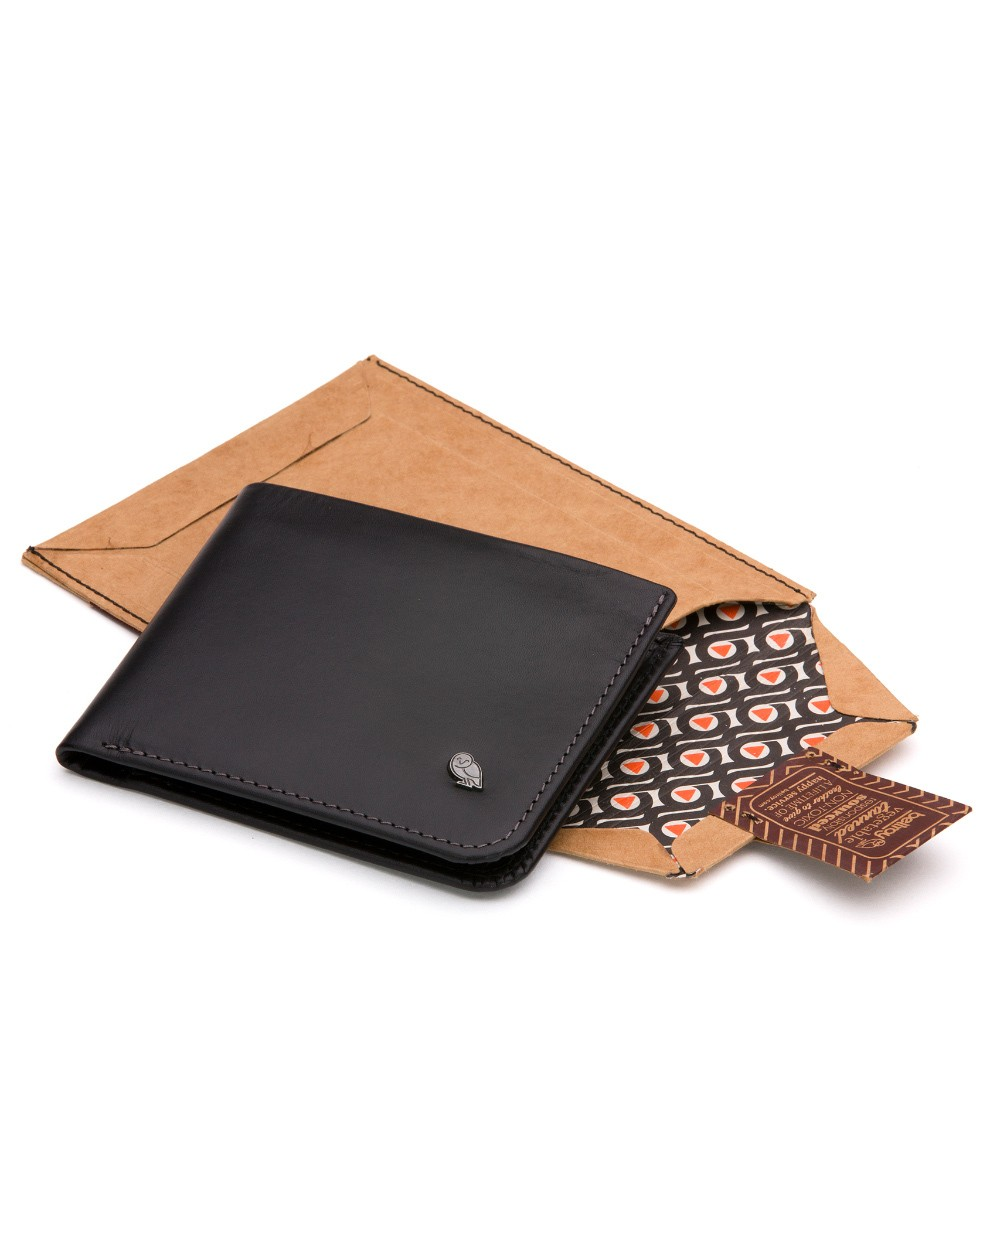 Bellroy Hide and Seek Wallet in Black